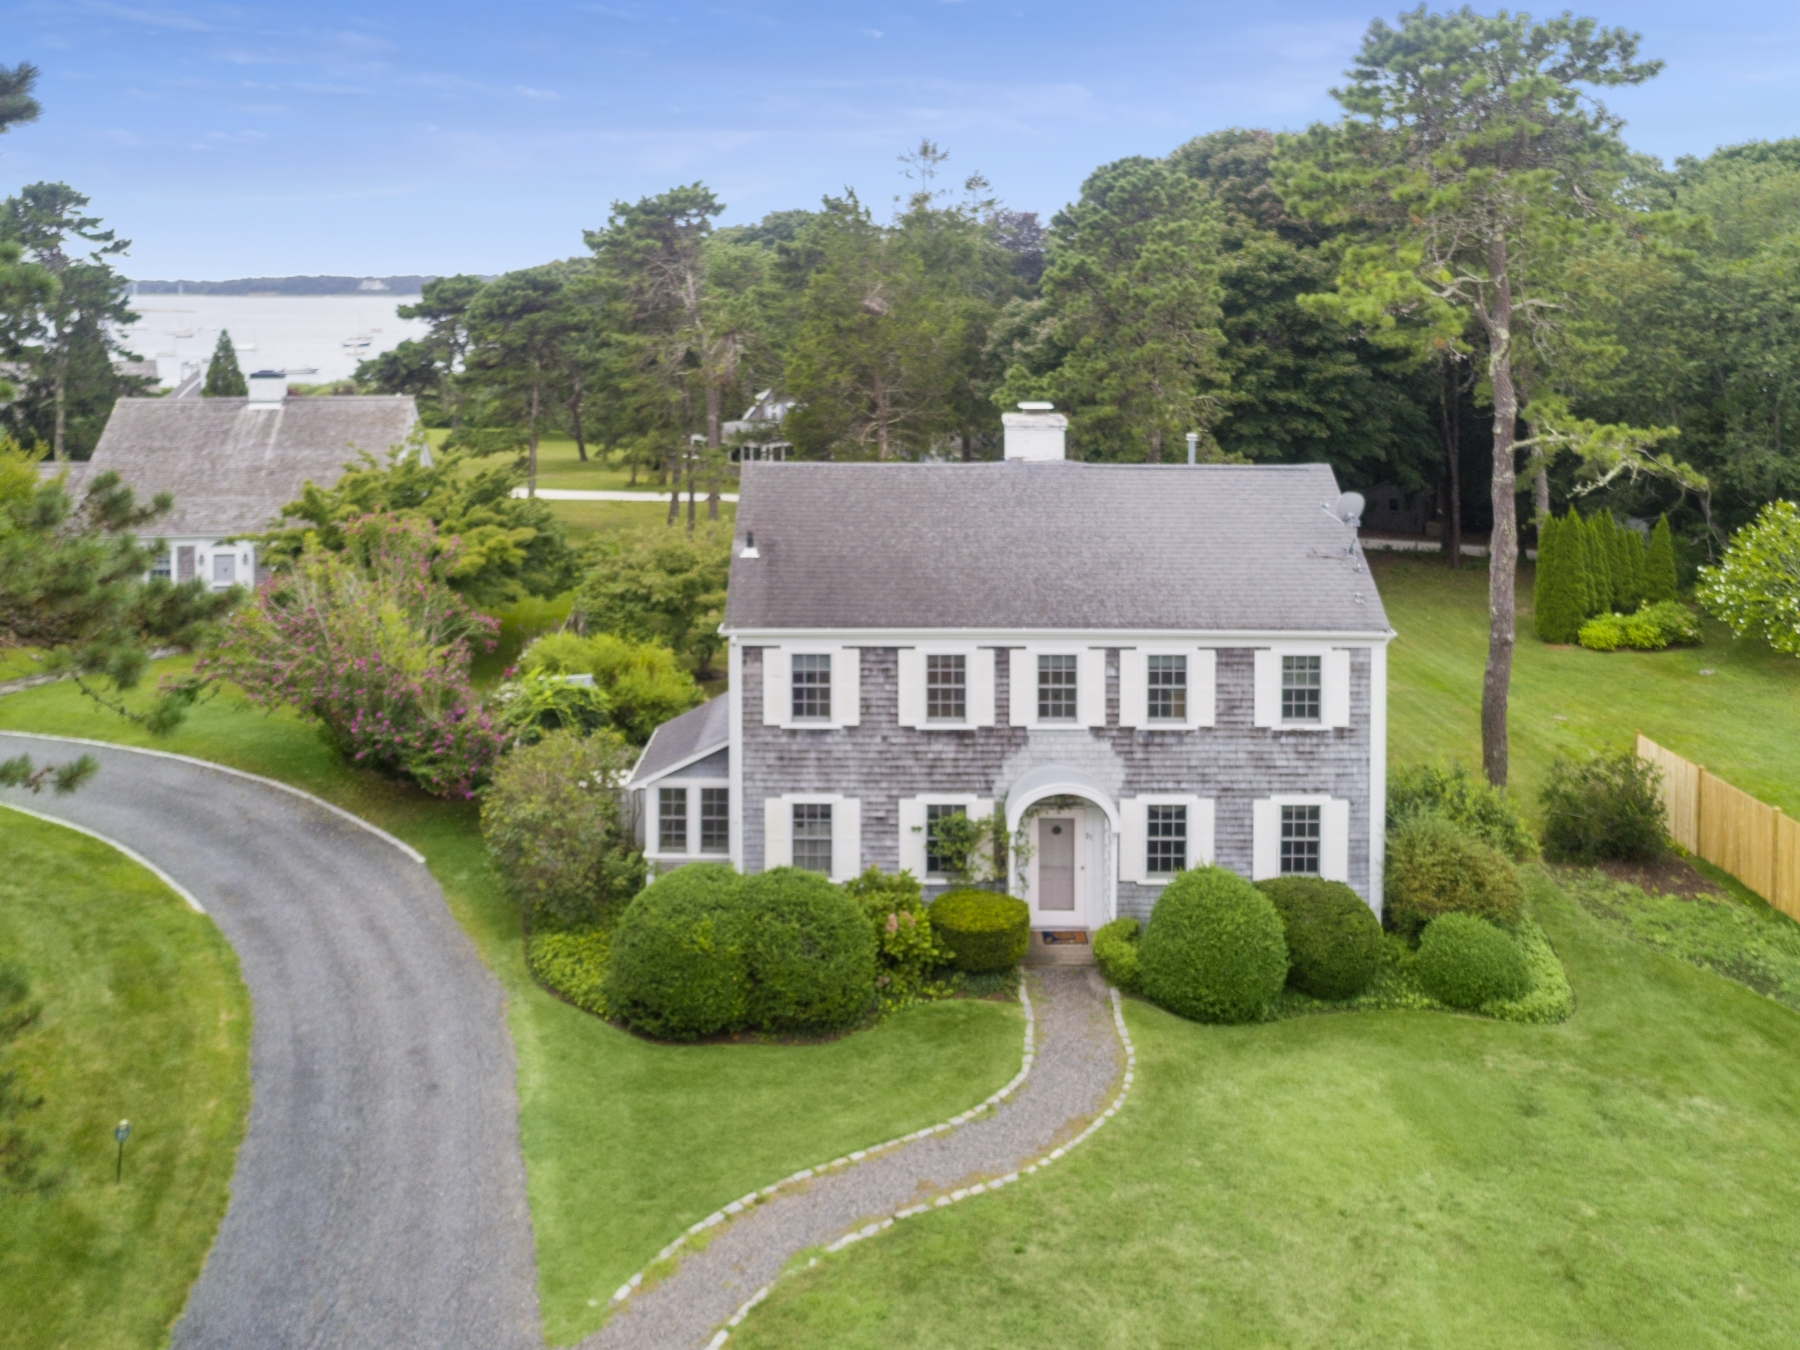 SOLD By Griffin Realty Group 31 Eel River Road Osterville, Ma 02655 | MLS # 21906149 |